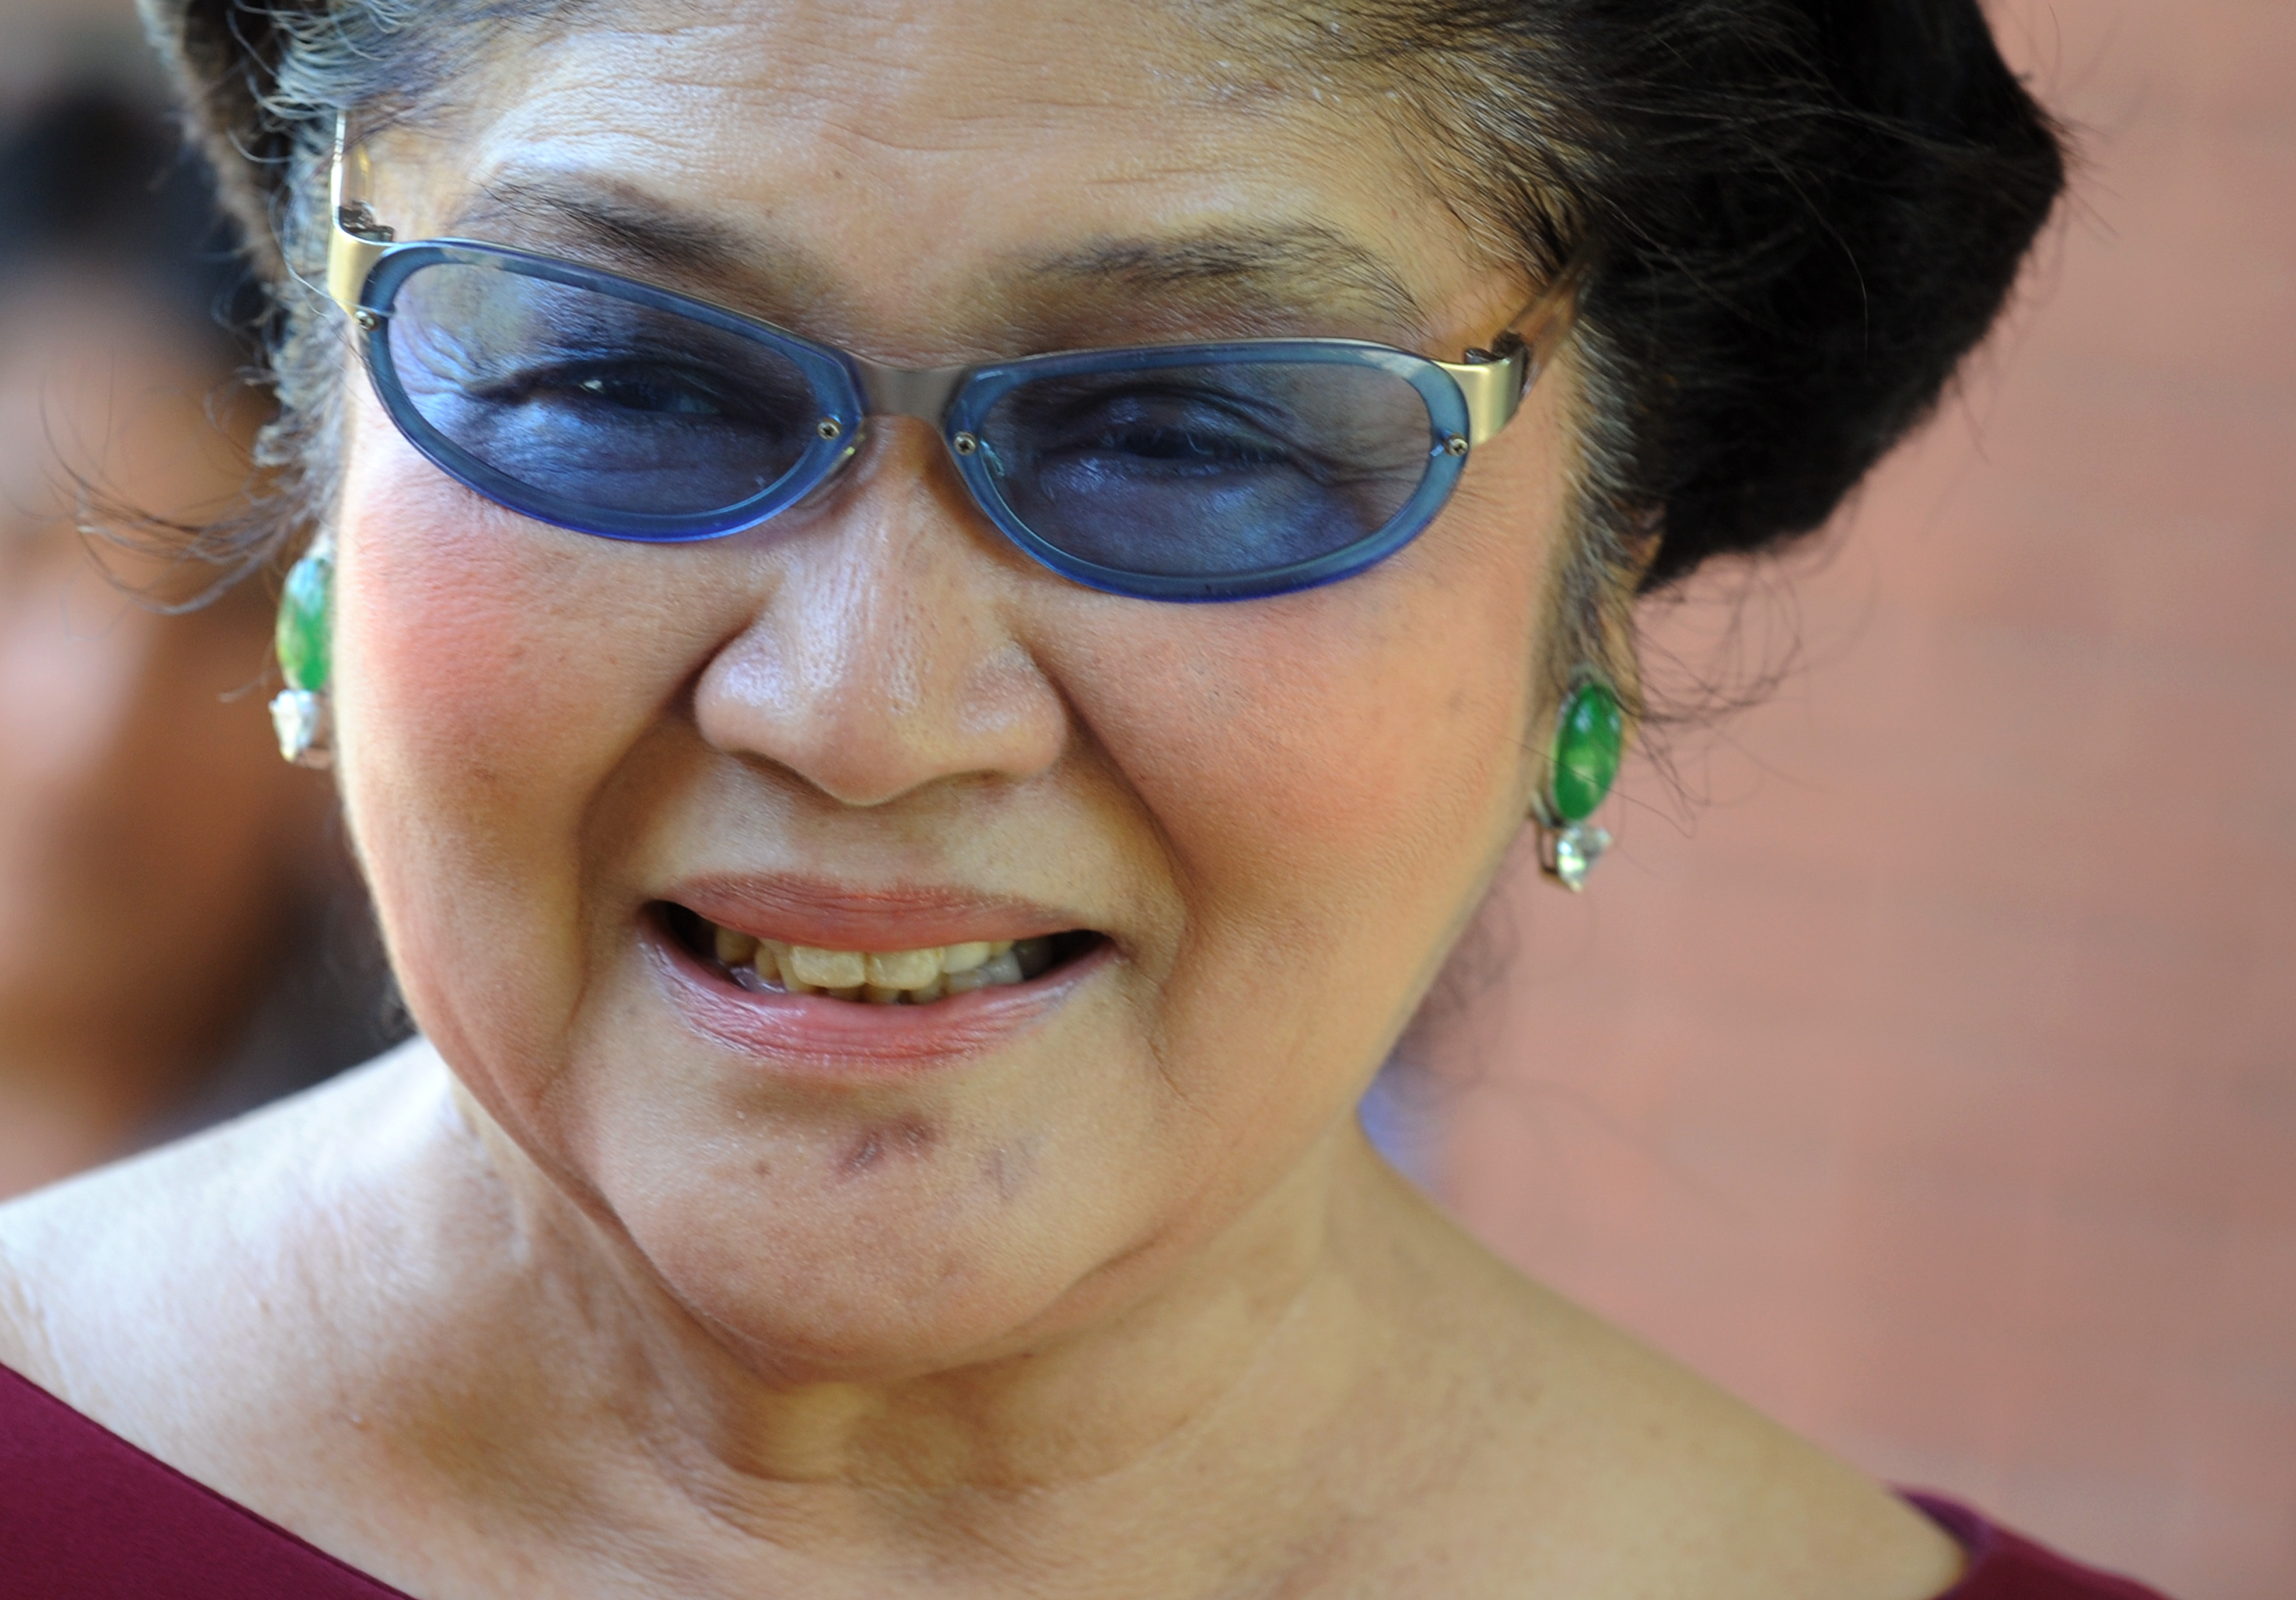 Philippine former first lady Imelda Marcos smiles while meeting supporters in Laoag city, northern province of Ilocos Norte, on May 13, 2010.